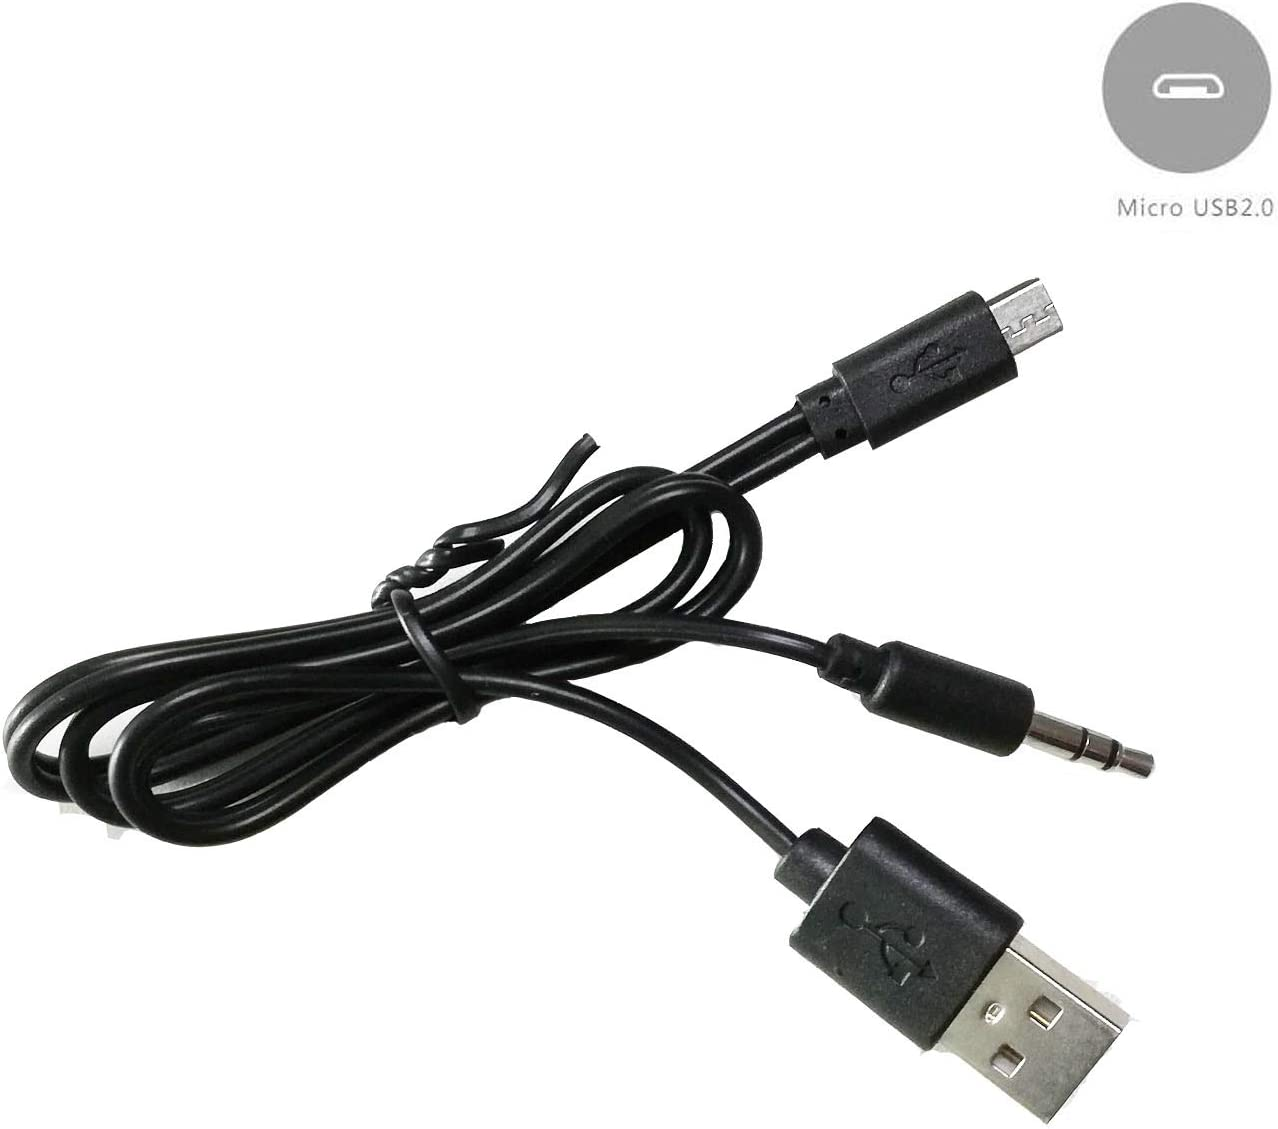 2Port USB2.0 Double Head Connection Converter Adapter Connector Male To Male USB